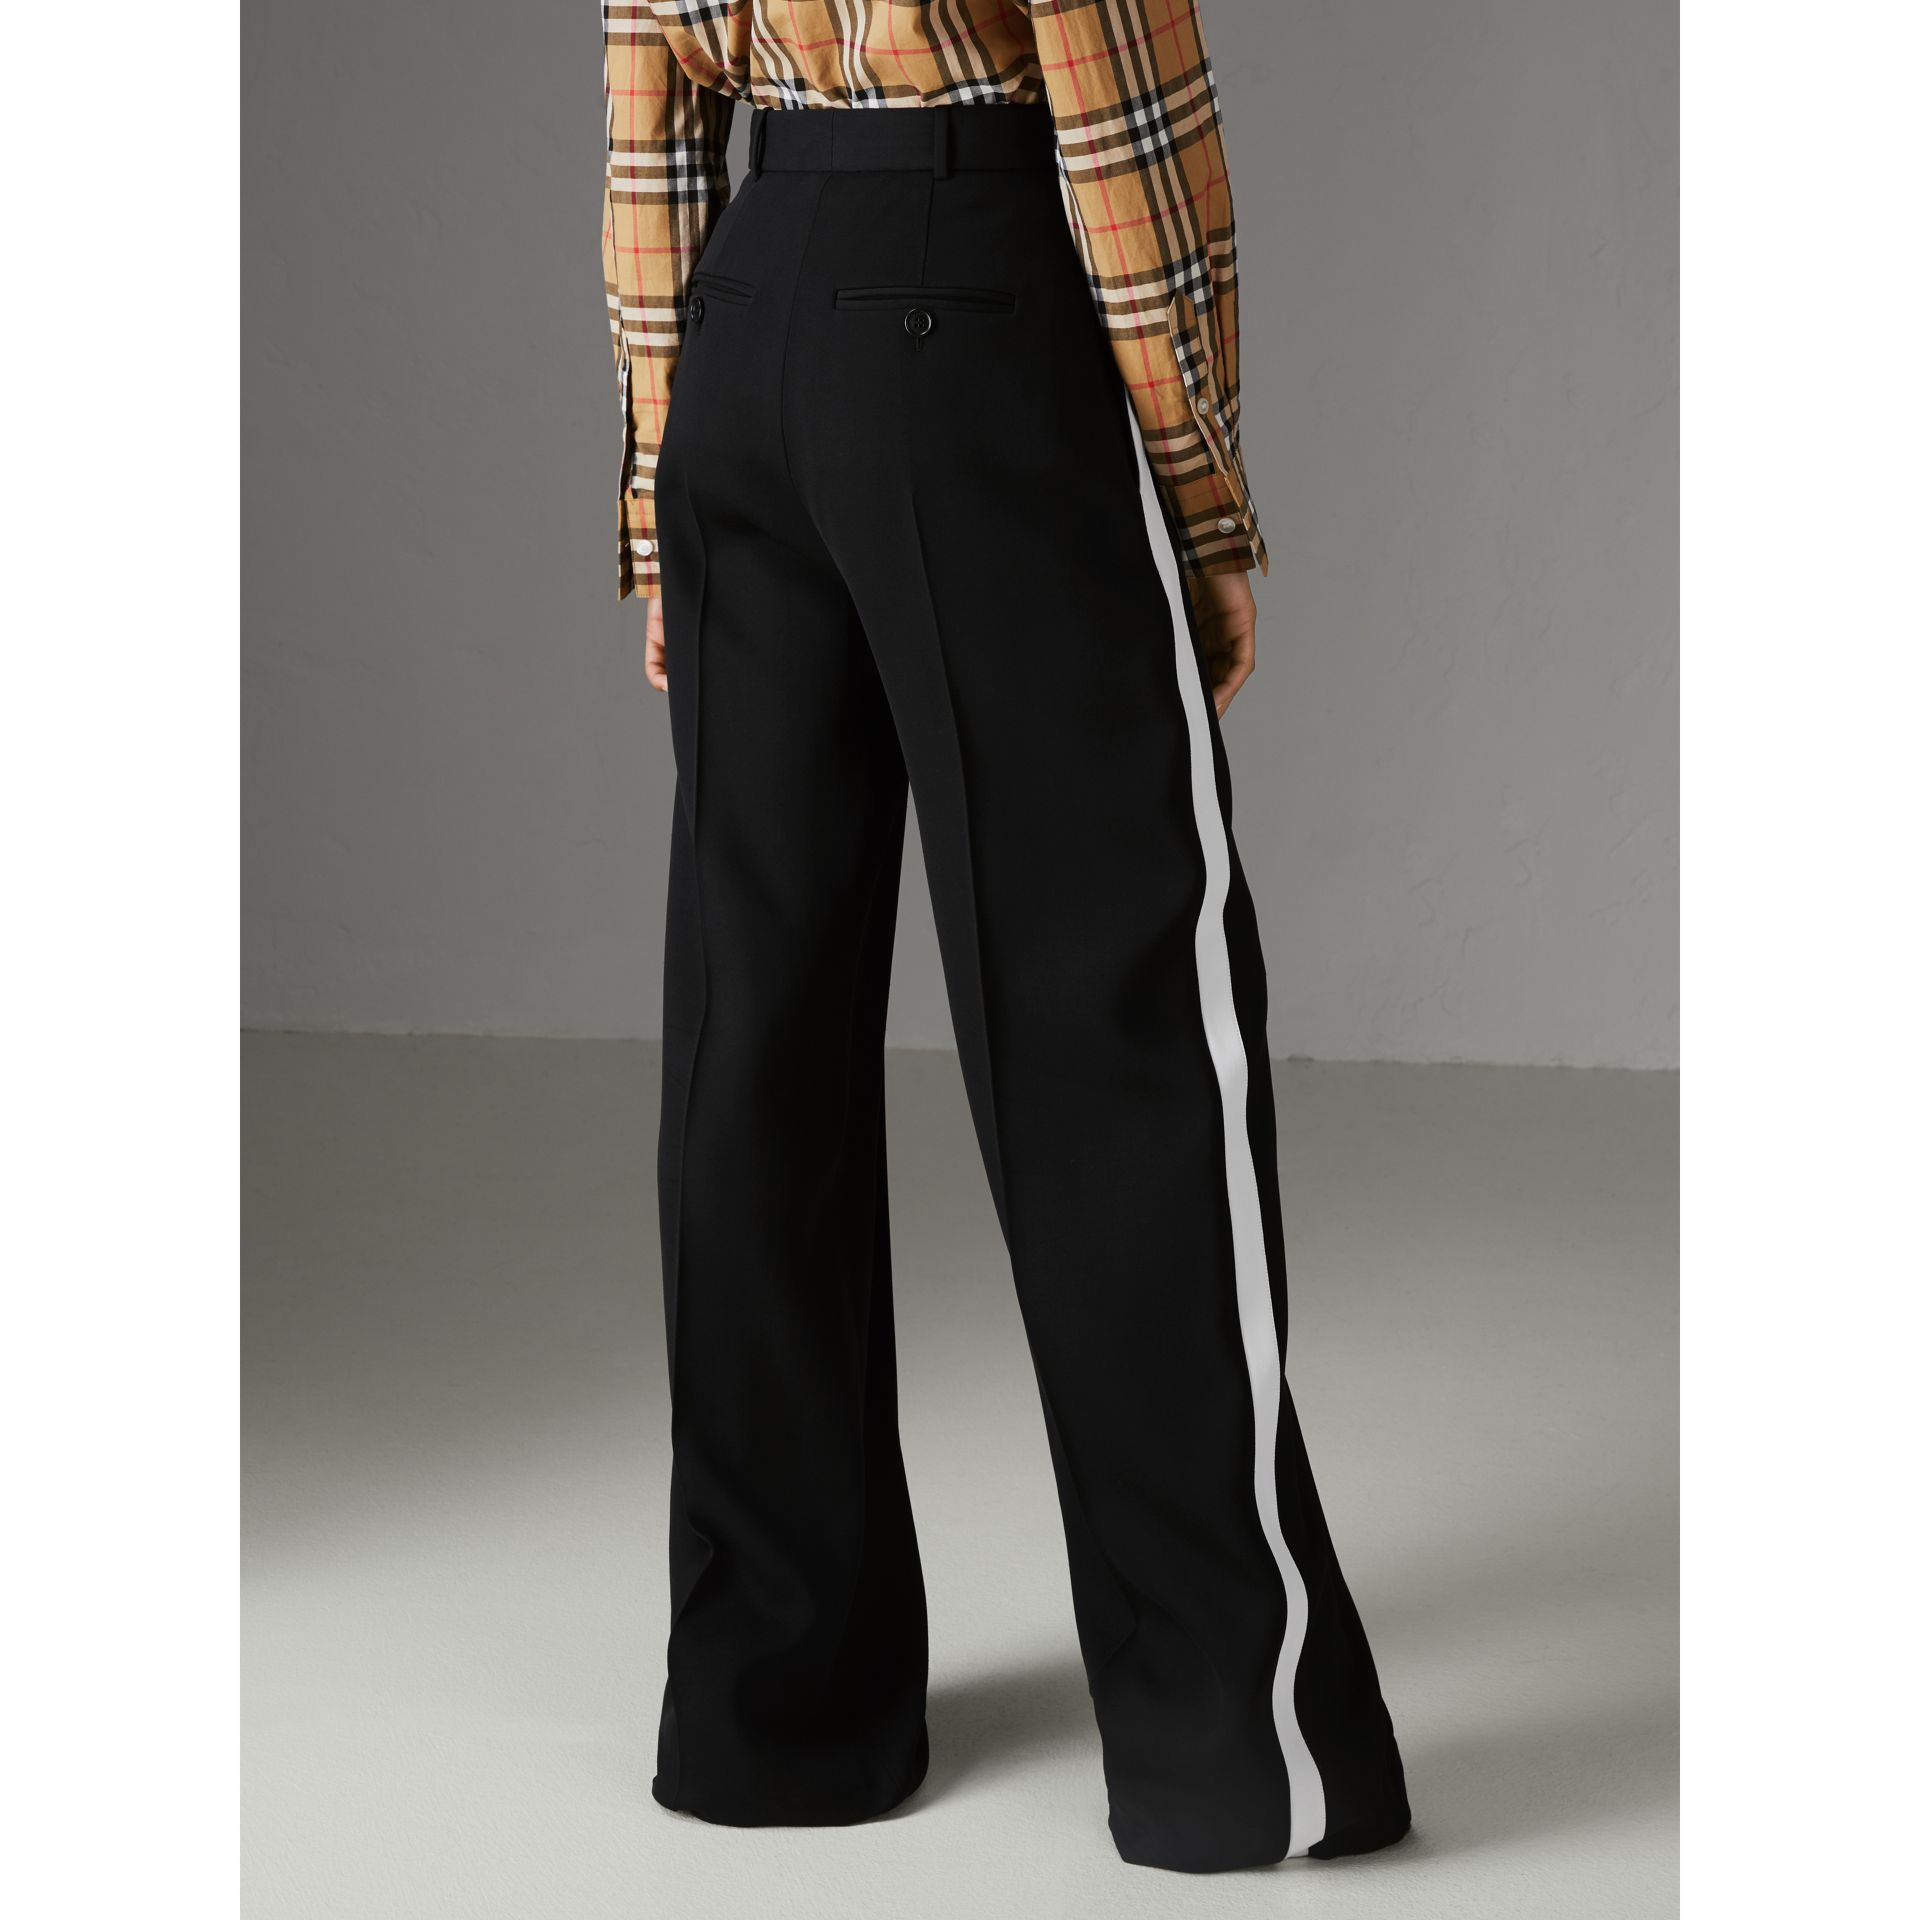 Pantalon ample en crêpe (Noir) - Femme | Burberry - photo de la galerie 2